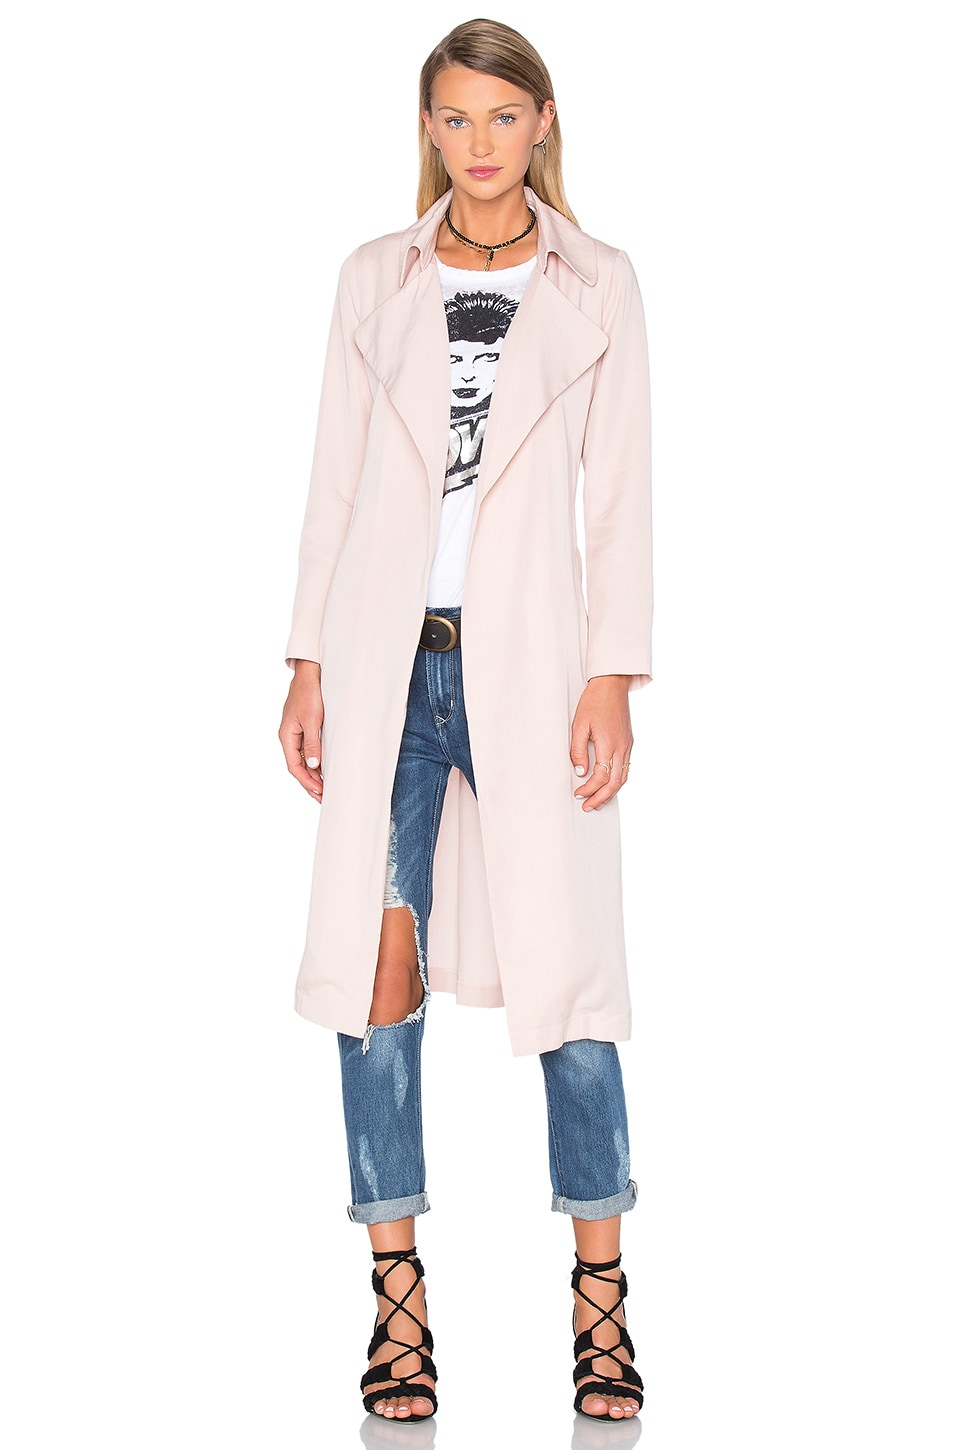 BLAQUE LABEL Duster Coat in Nude